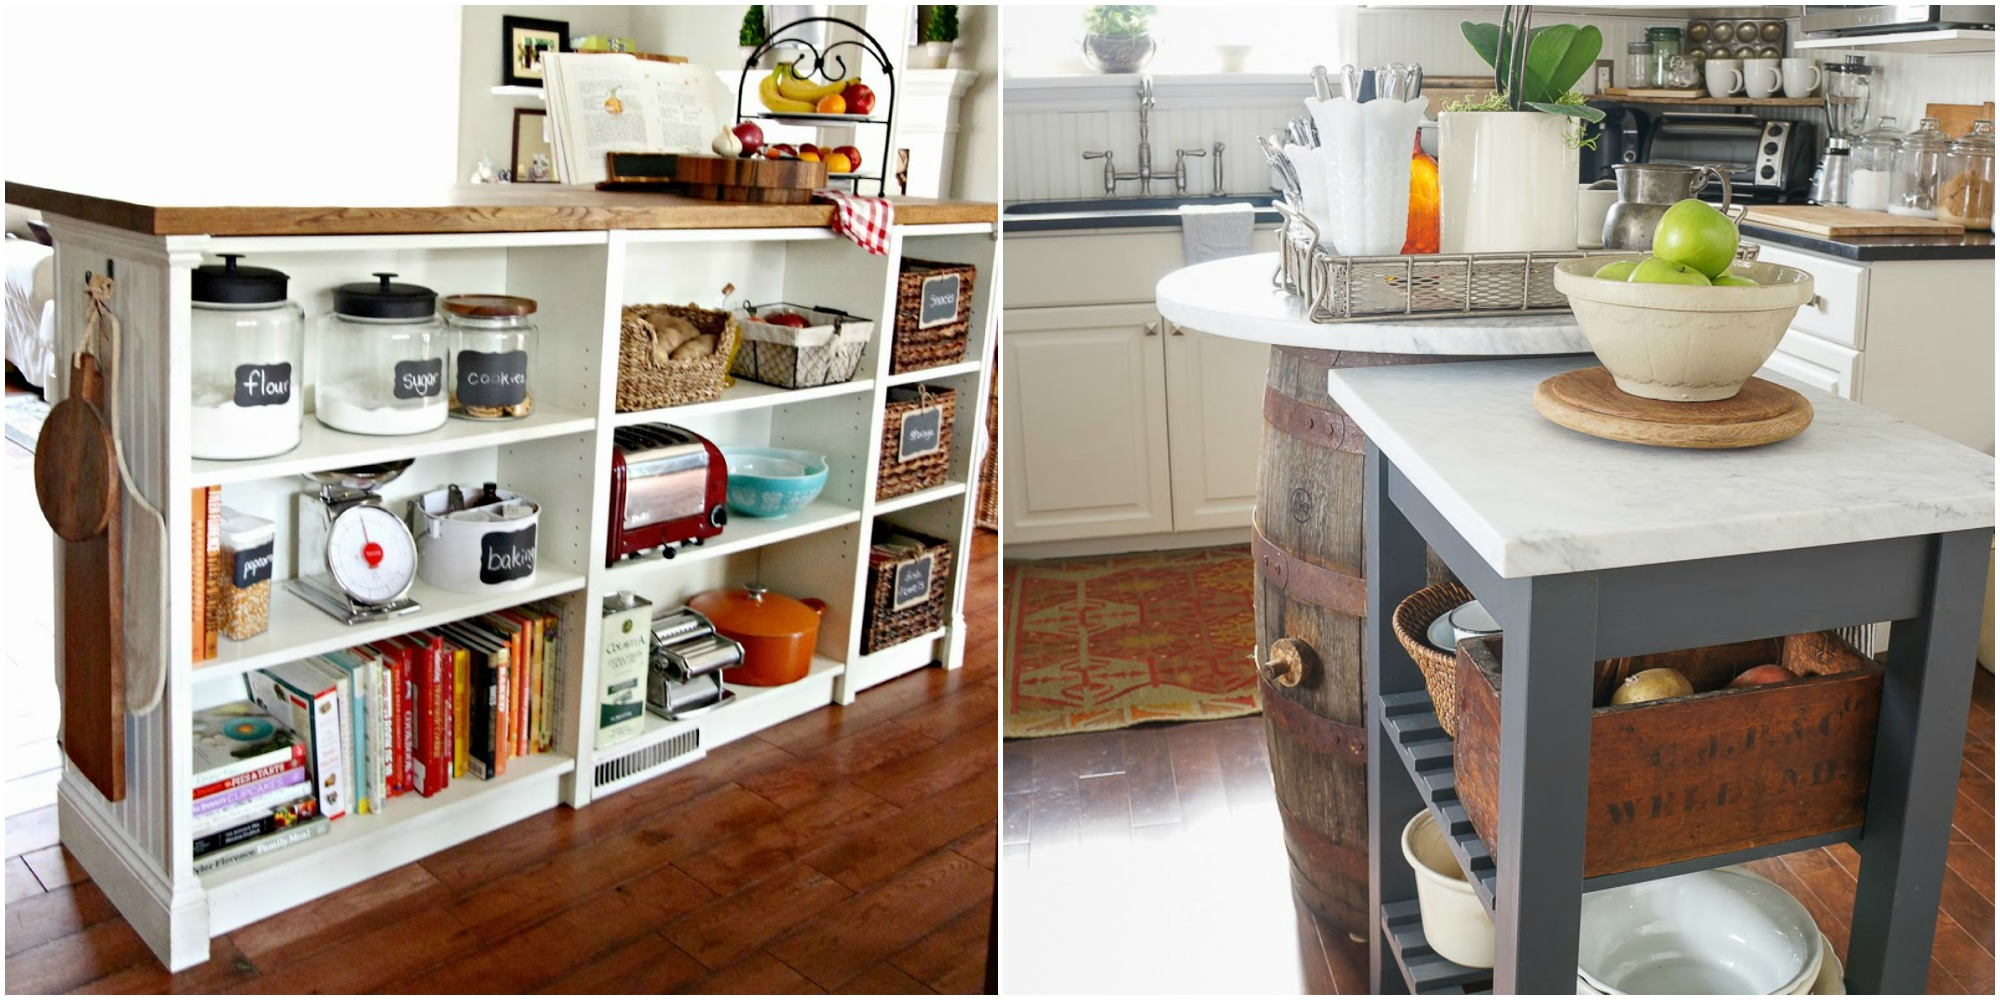 Best Spice Racks For Kitchen Cabinets 12 Ikea Kitchen Ideas Organize Your Kitchen With Ikea Hacks